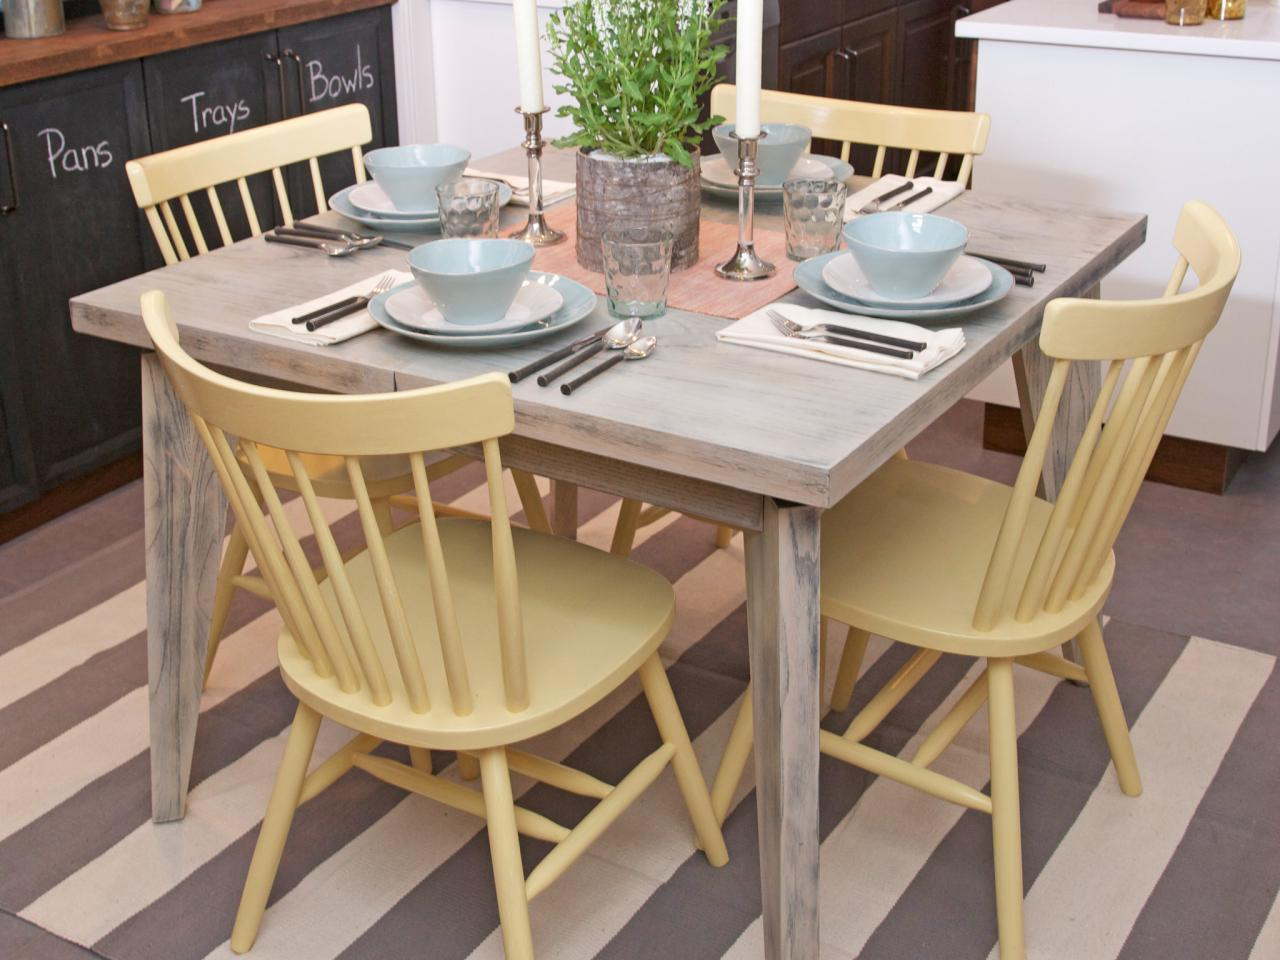 Painting kitchen tables pictures ideas tips from hgtv for Painted kitchen chairs